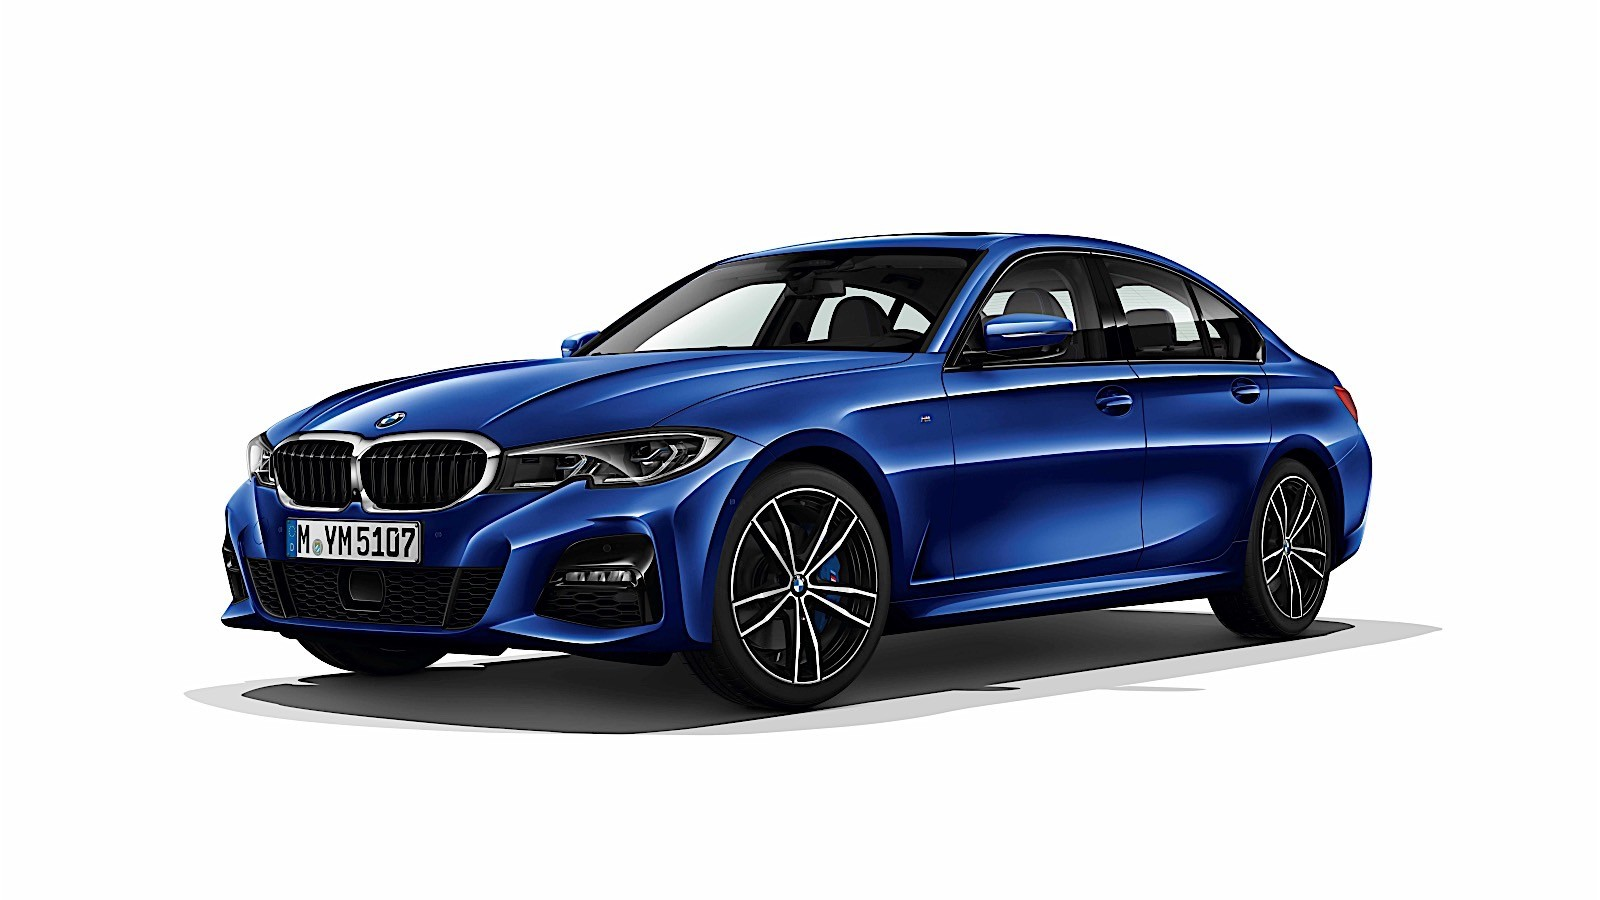 2019 bmw 3 series photos leaked m340i m performance shows its face autoevolution. Black Bedroom Furniture Sets. Home Design Ideas